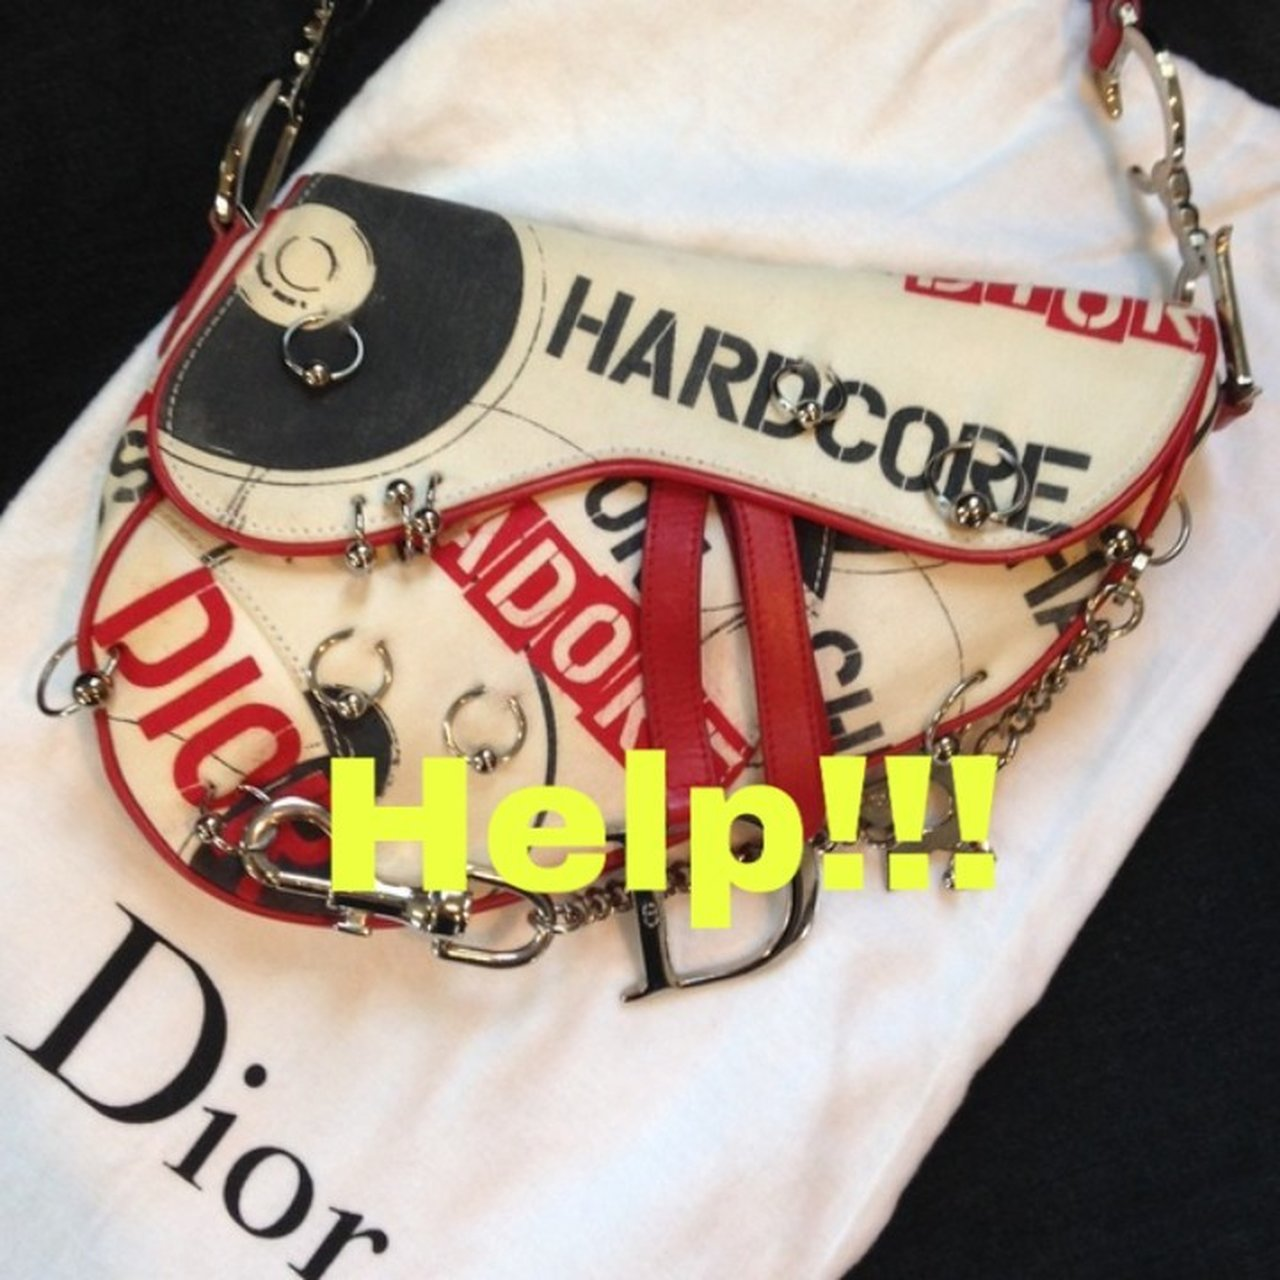 dcc5d5f0afb2 Desperately looking for Christian Dior Hardcore saddle bag